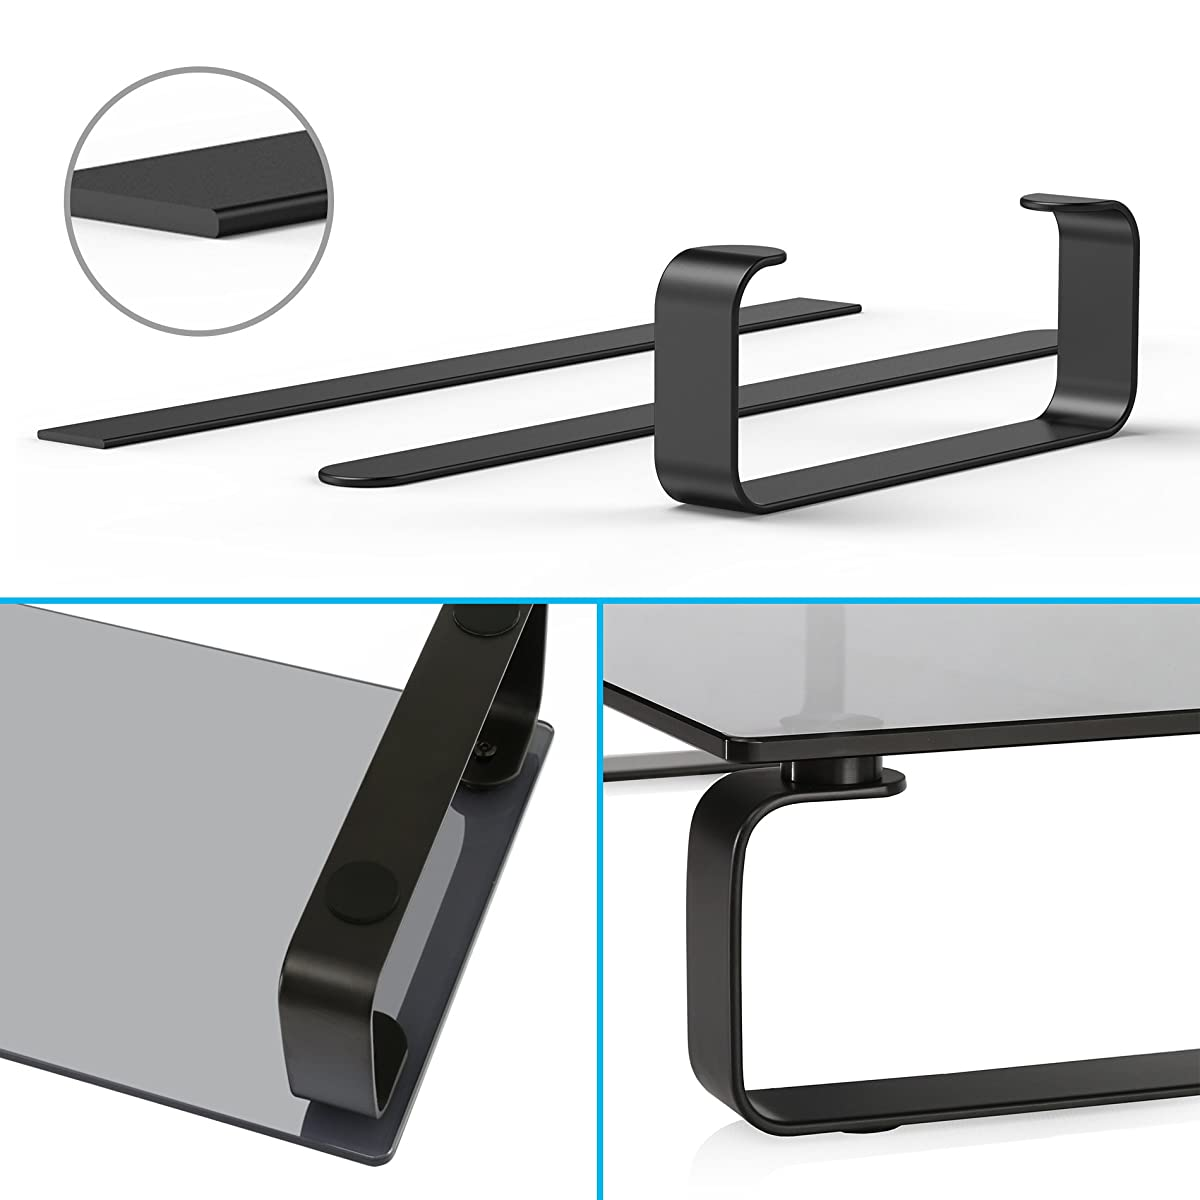 FITUEYES Tempered Glass Computer Monitor Printer Machine StandRiser TV Shelf Risers Stand 4.7 High 23.6 Save Space Desktop Stand for Xbox One/Component/Flat Screen TV-Black DT106005GB